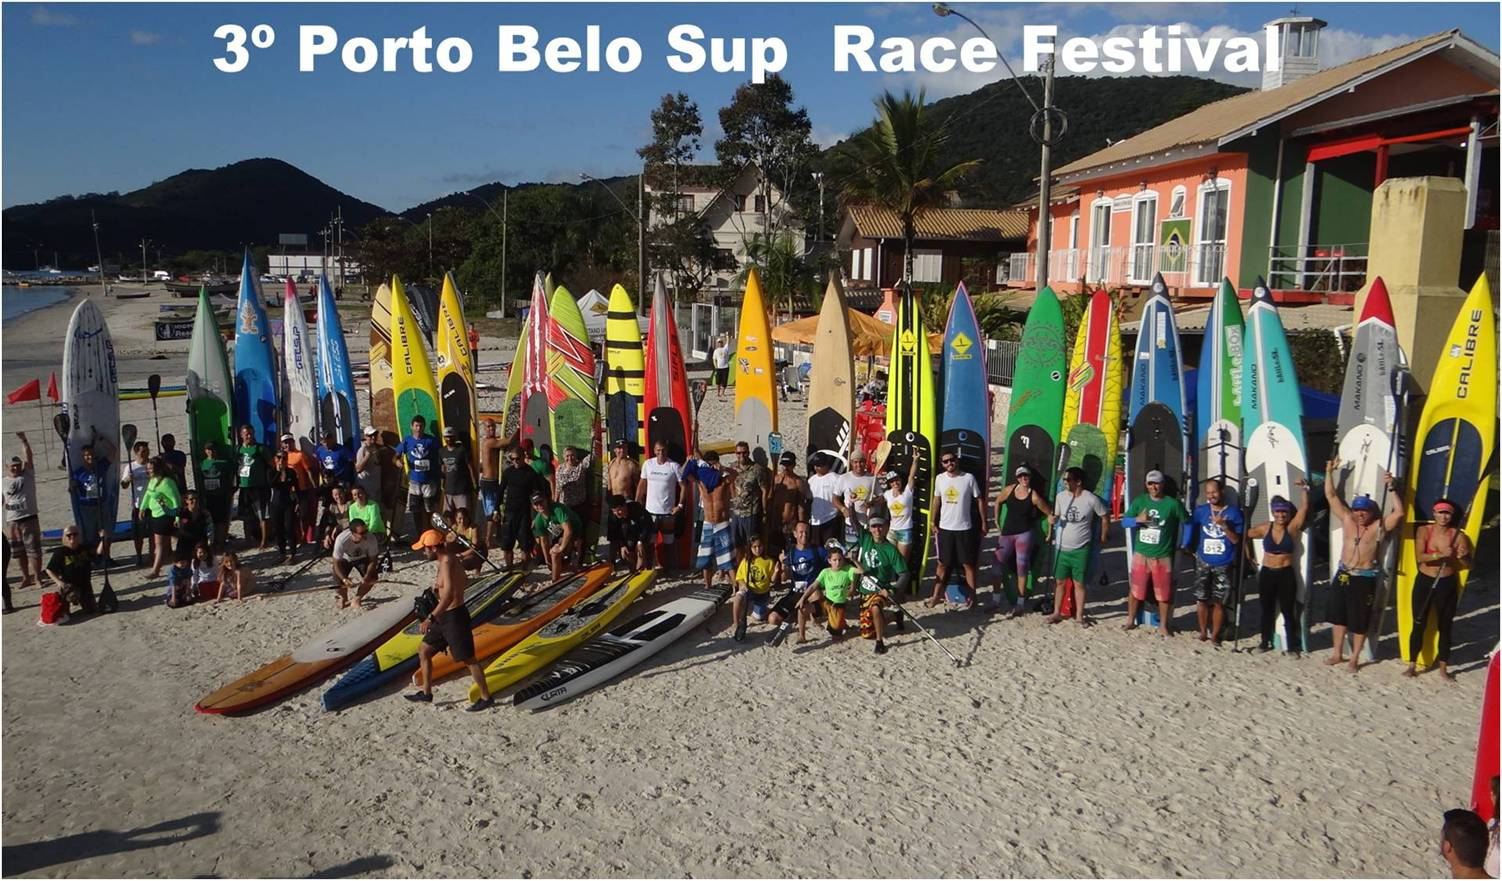 Pranchas de Stand Up Paddle colorem a baía de Porto Belo